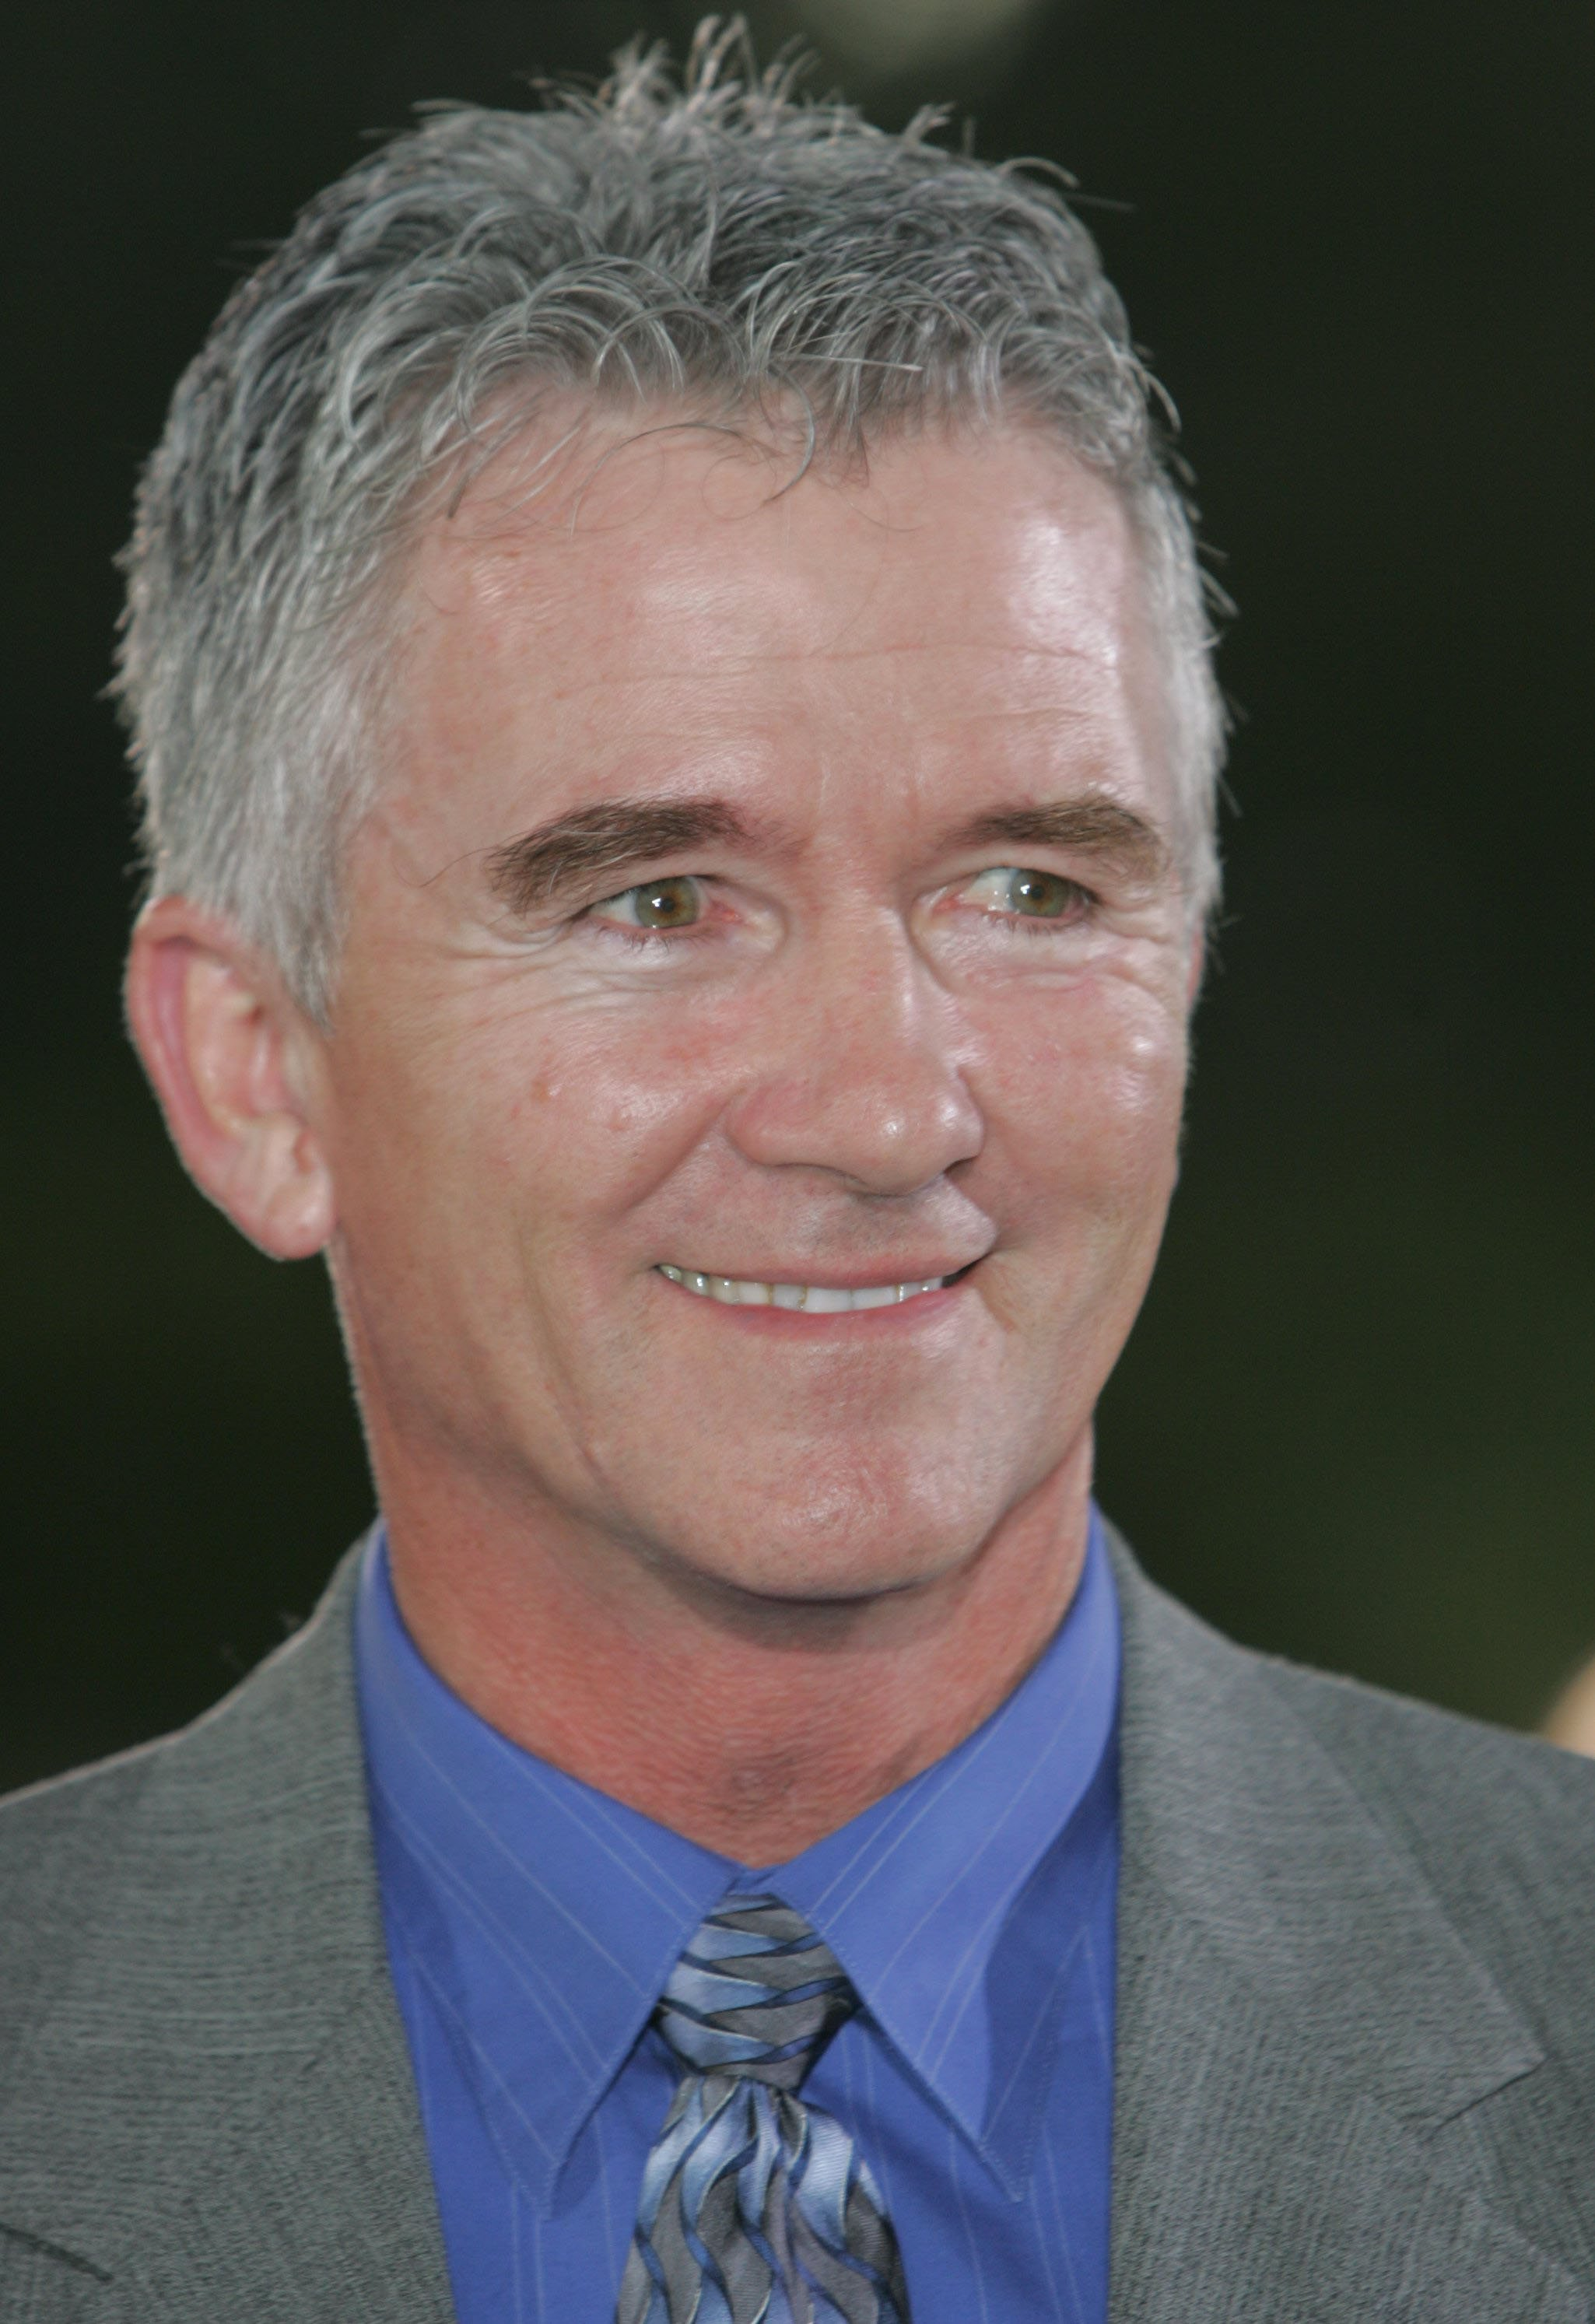 Patrick Duffy at the Celtic Manor Resort on August 27, 2005. | Photo: GettyImages